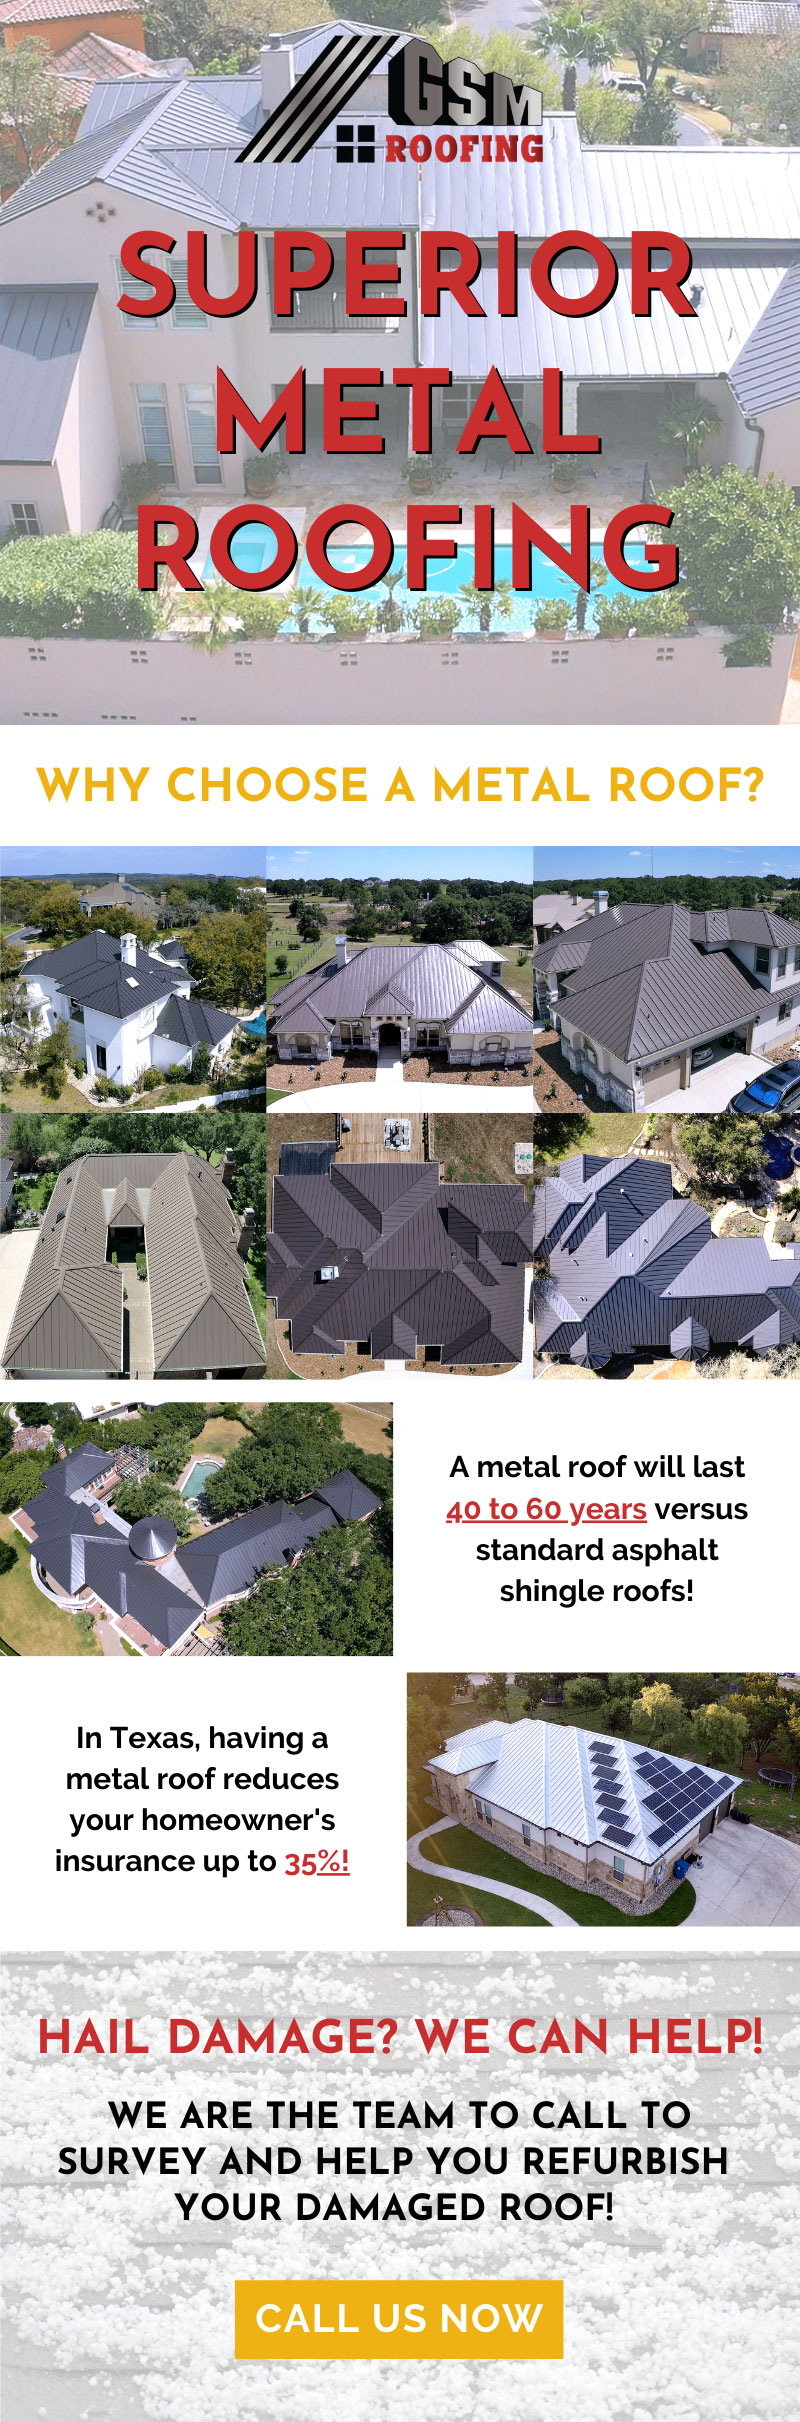 The Most Superior Metal Roofing! 👍 3